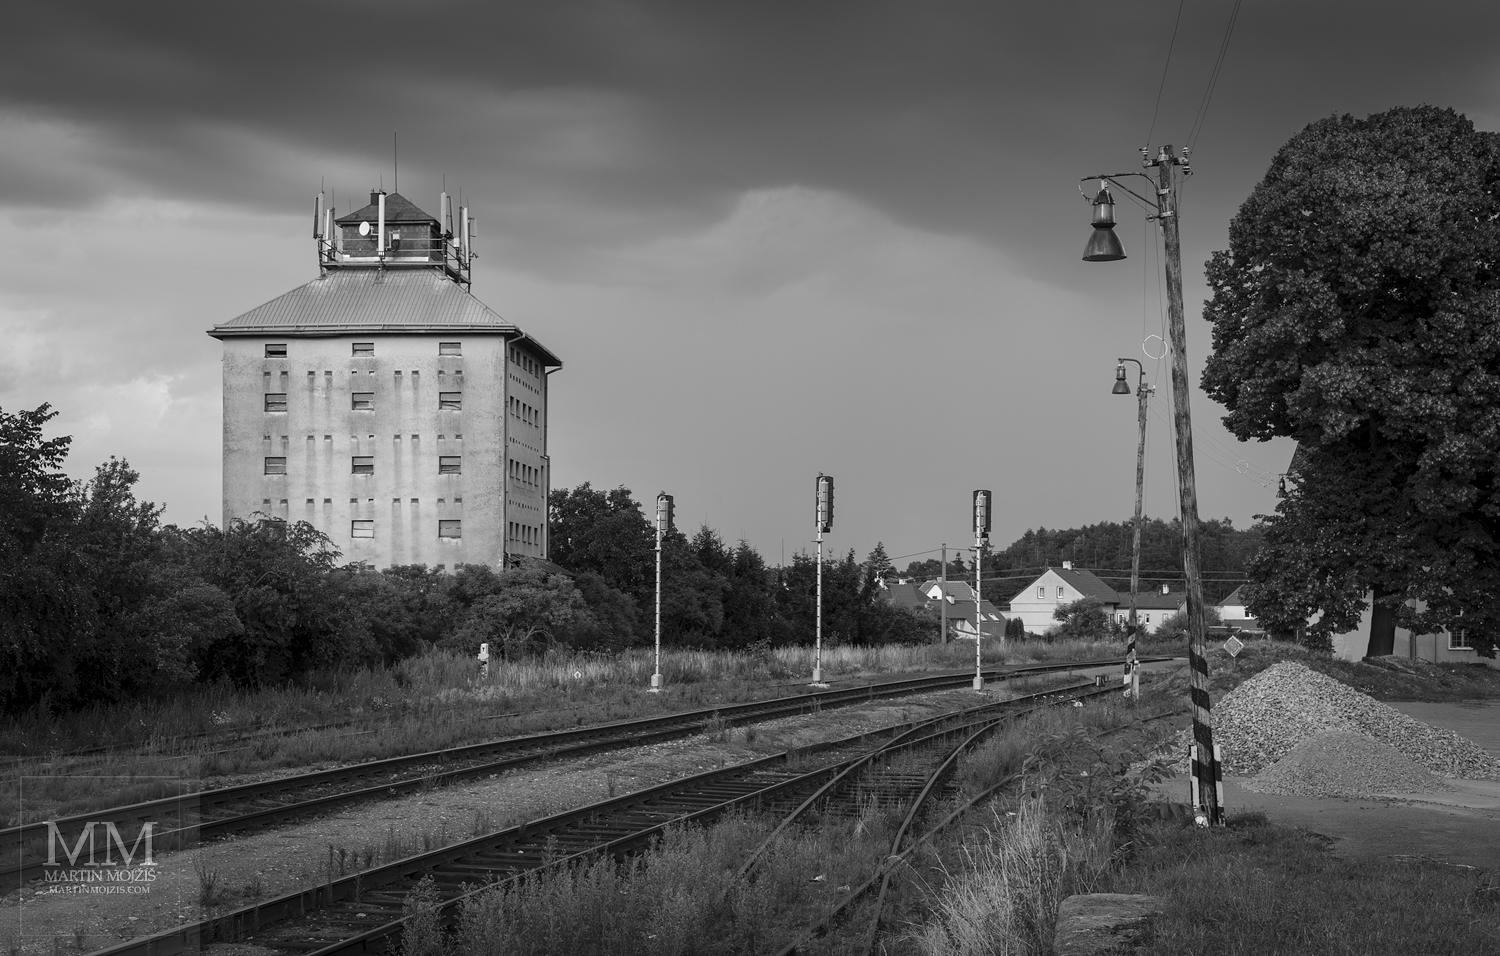 Large format, fine art black and white photograph of railway (railroad) station. Martin Mojzis.